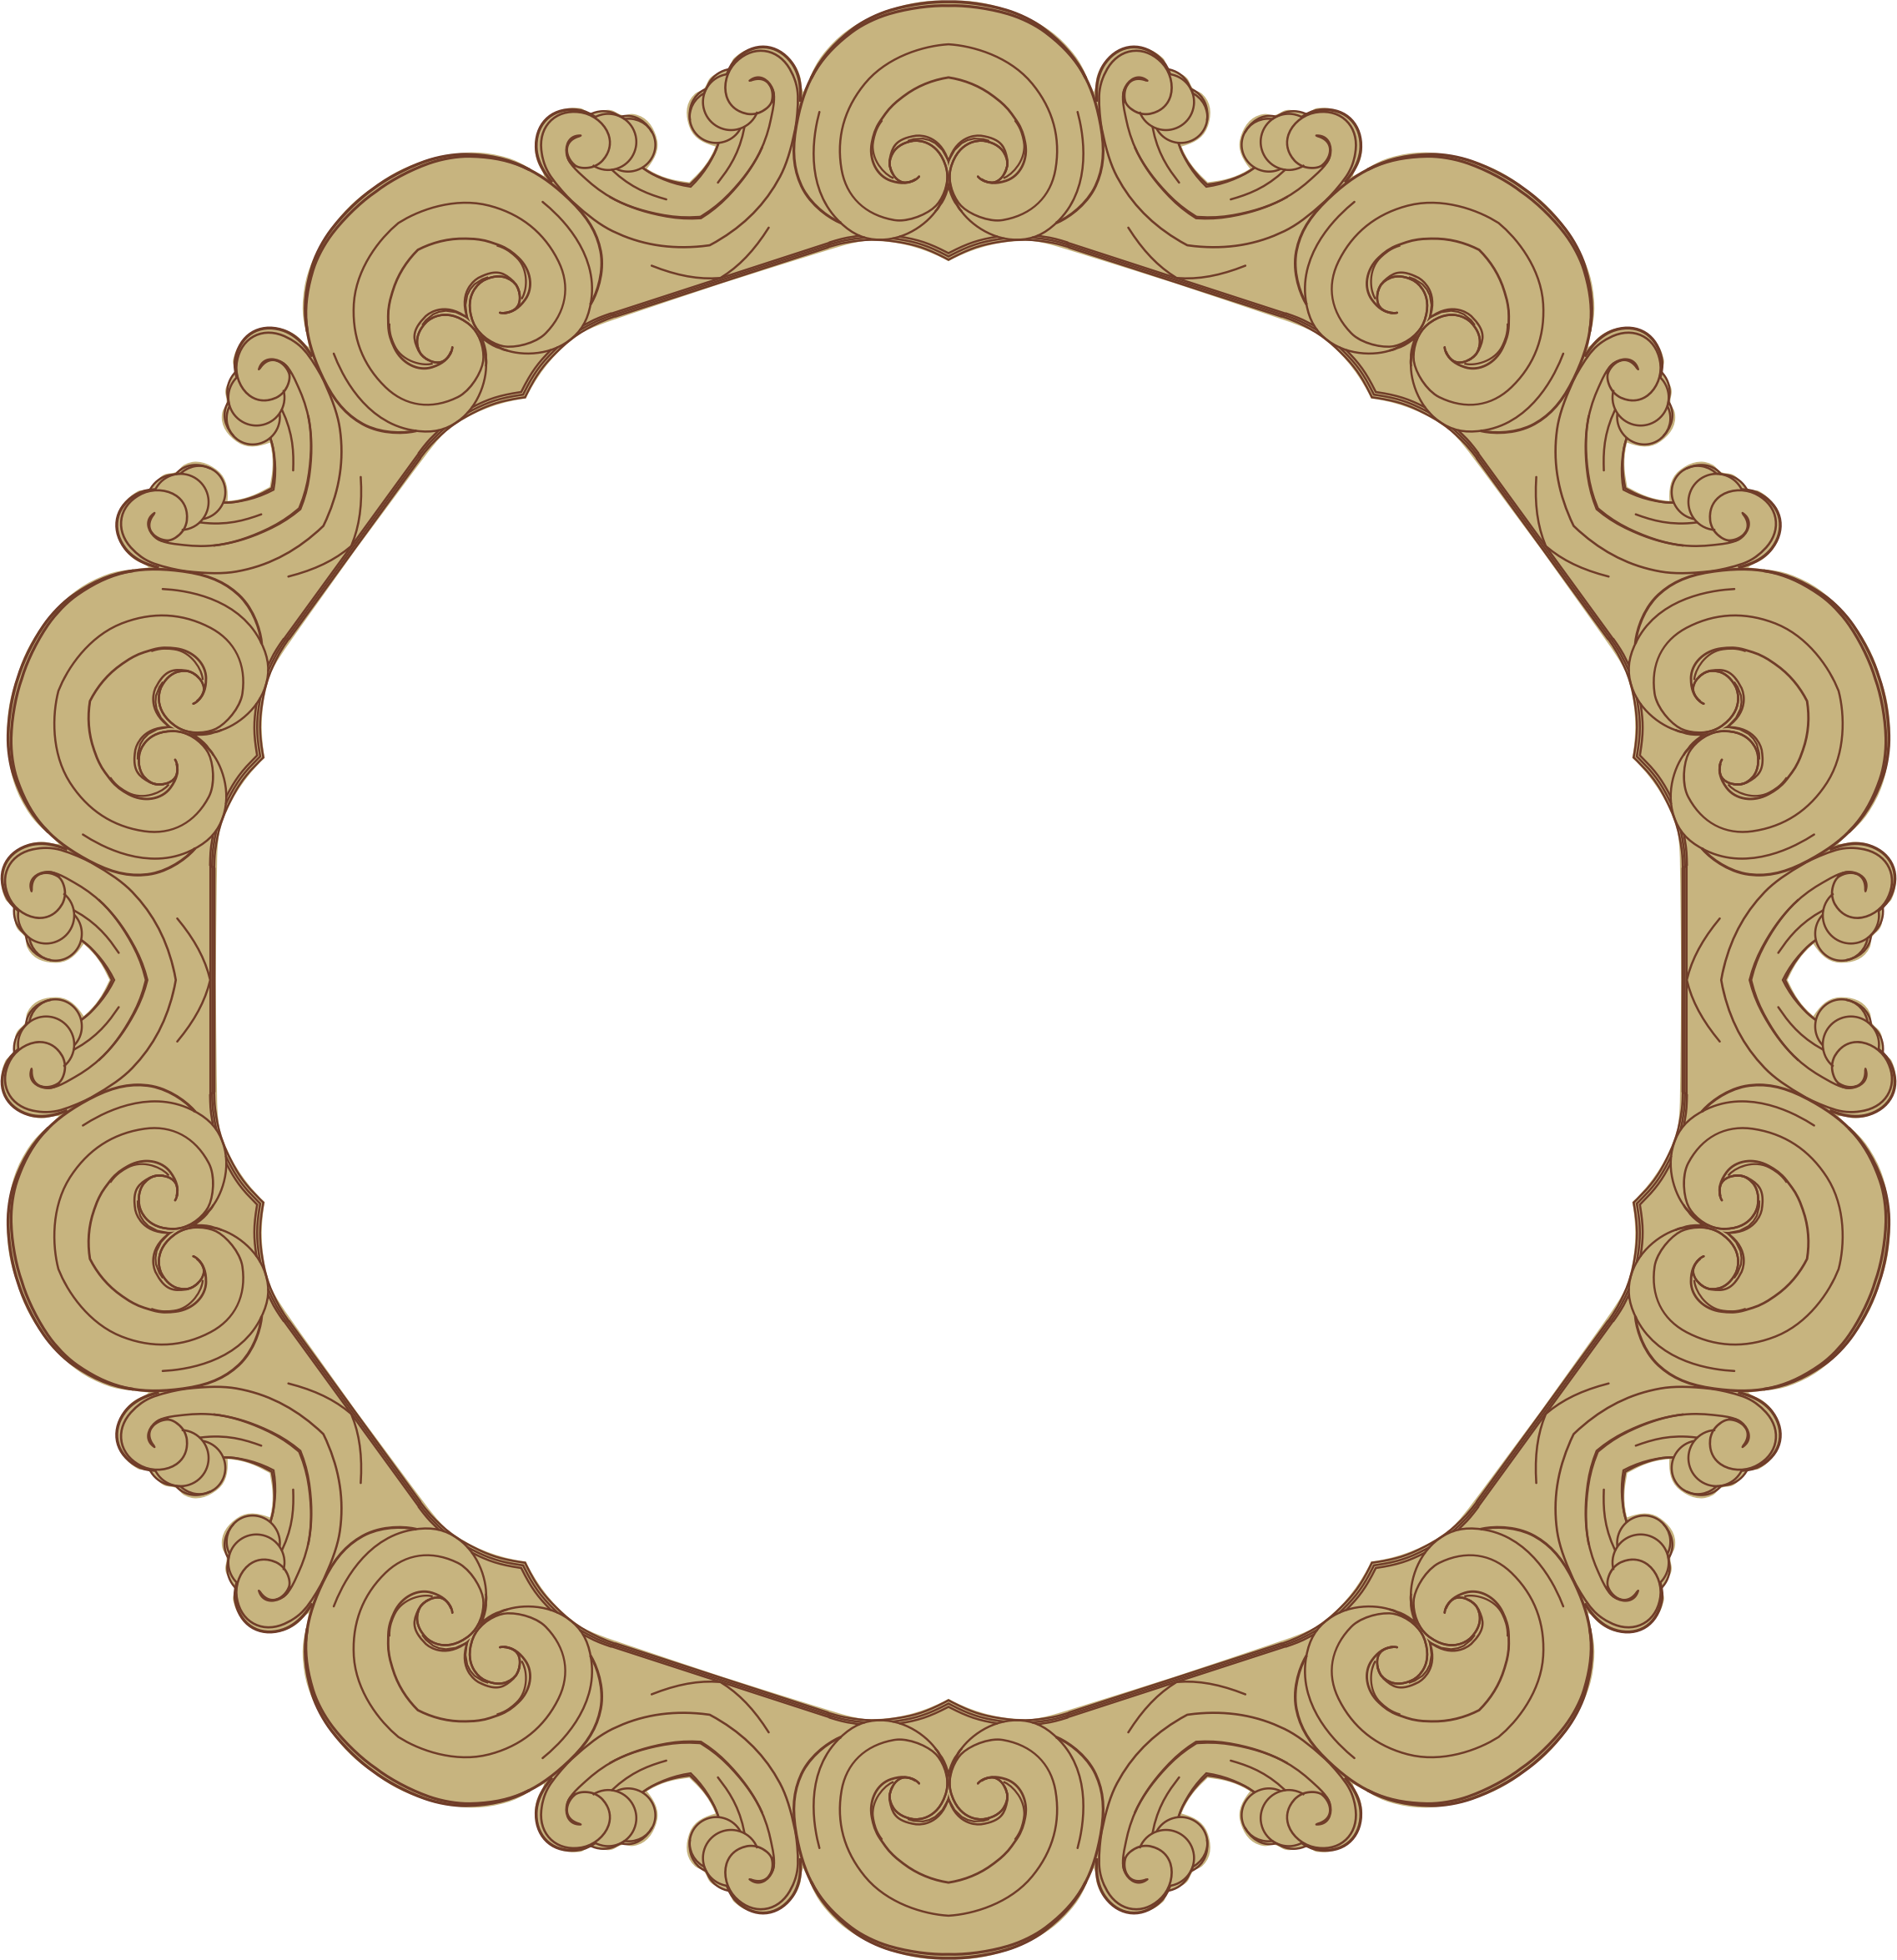 Ornate Frame 24 Derived 4 by GDJ